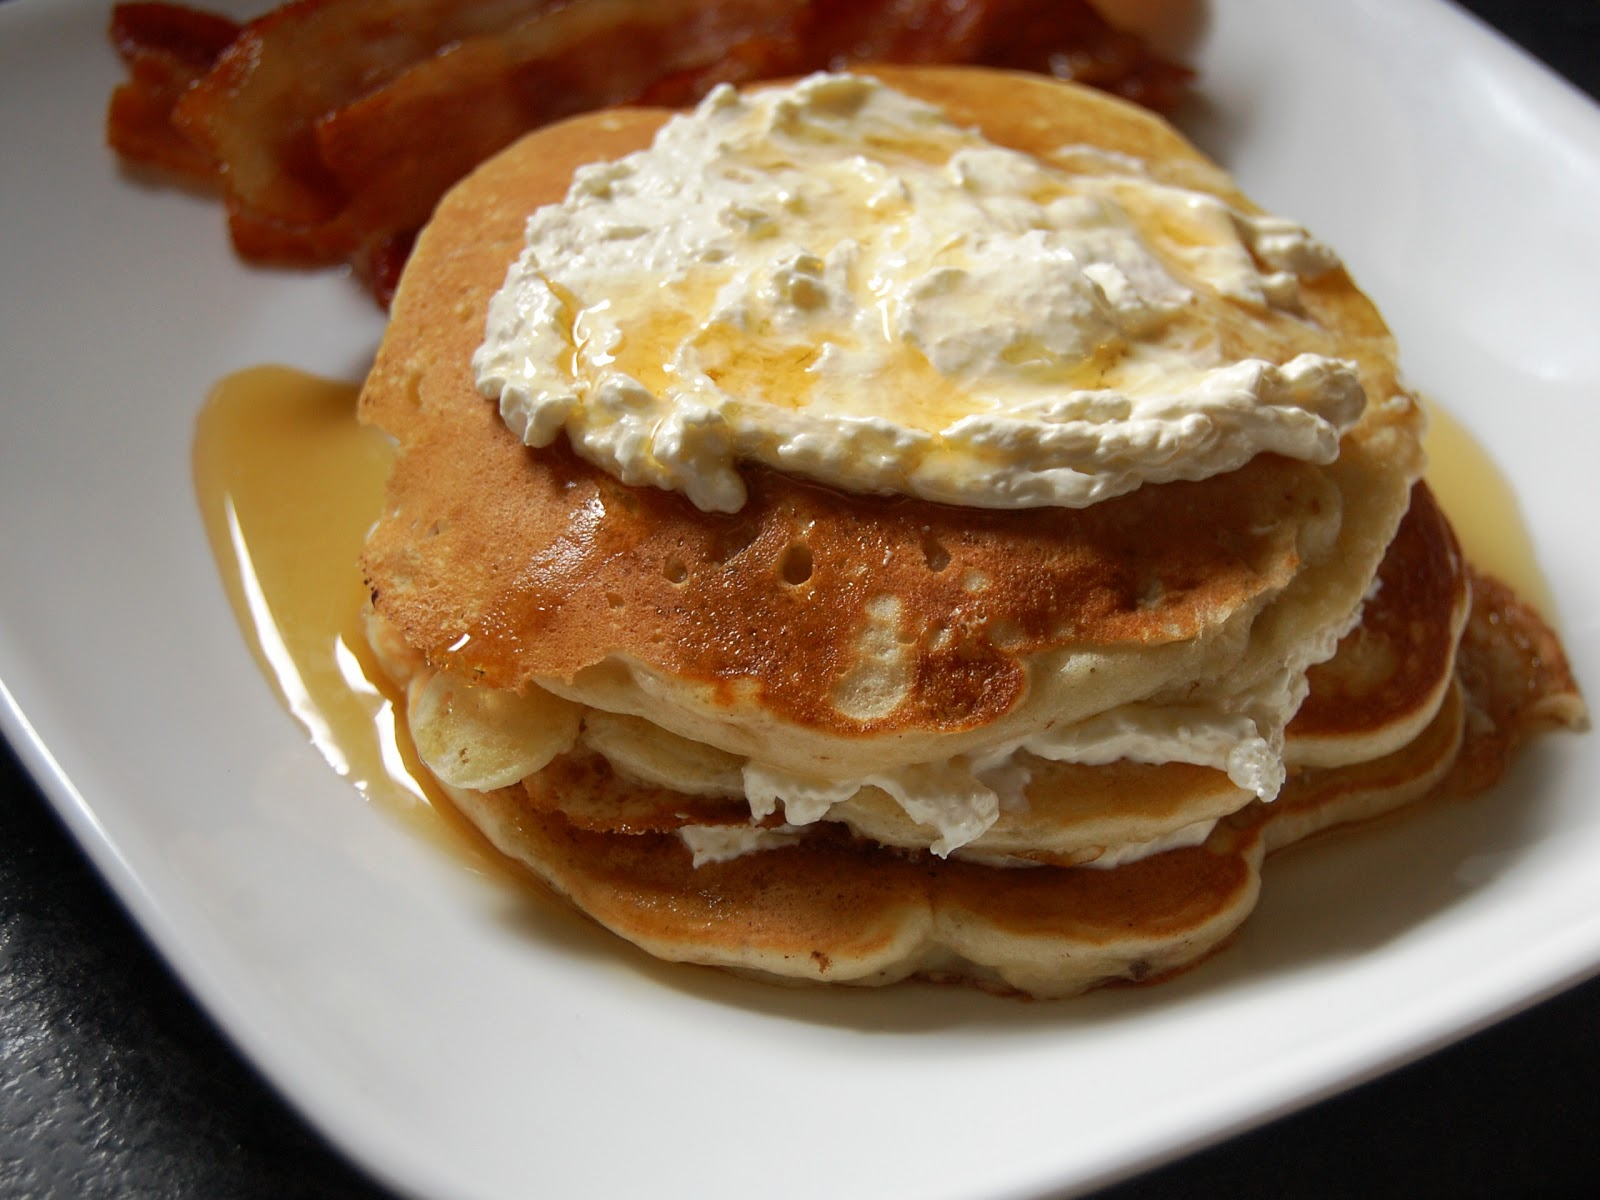 Cassie Craves: Banana Nut Pancakes